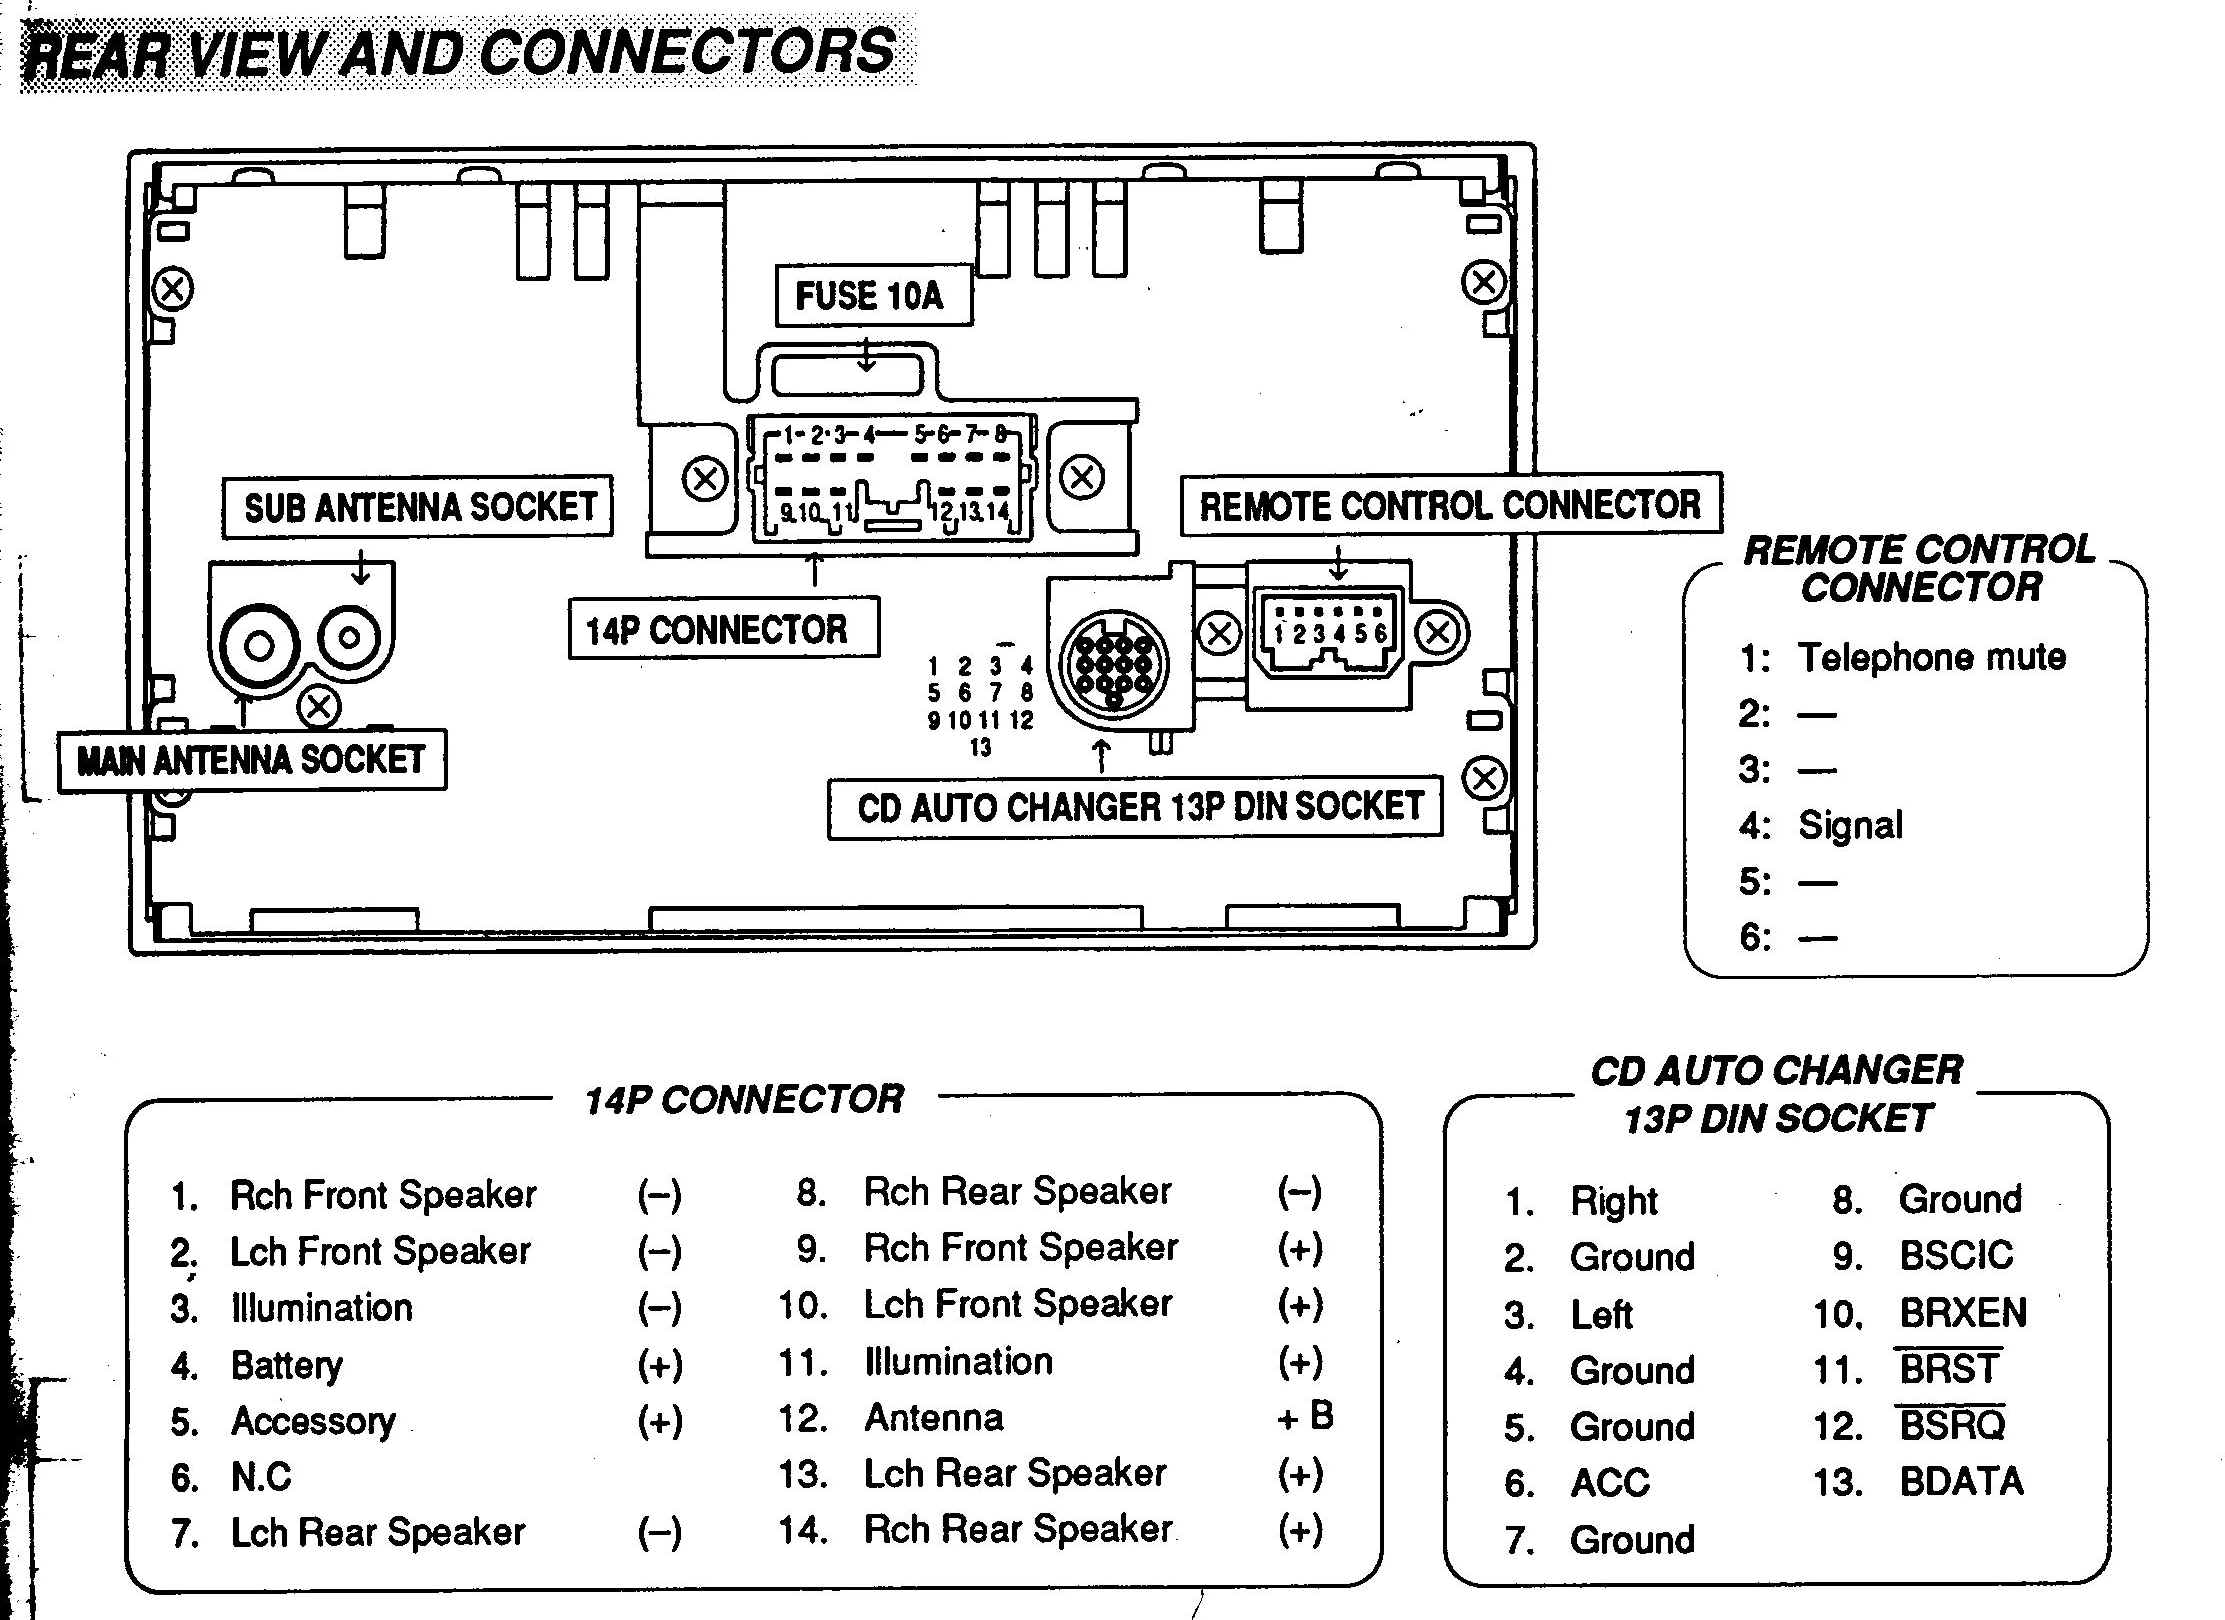 Wiring Diagram For Stereo Data Schematic 2006 Dodge Dakota Speaker Factory Car Diagrams Detailed Schematics Rh Lelandlutheran Com Speakers